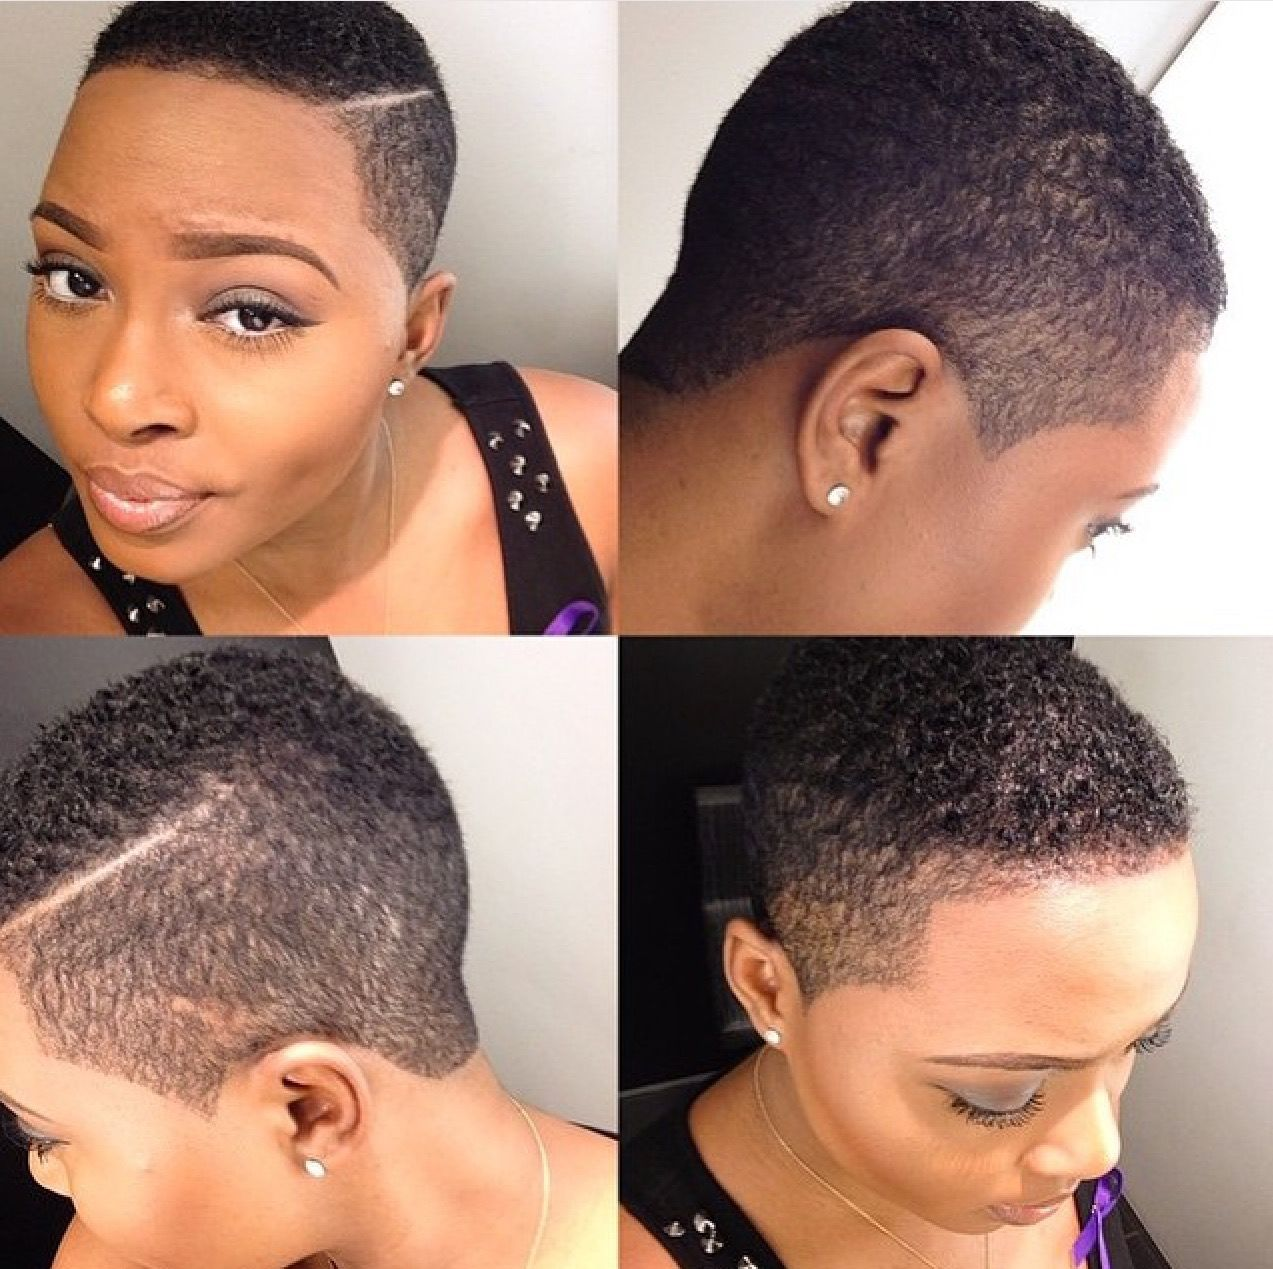 Low Cut Hairstyles For Black Females: Pin On Black Hairstyles